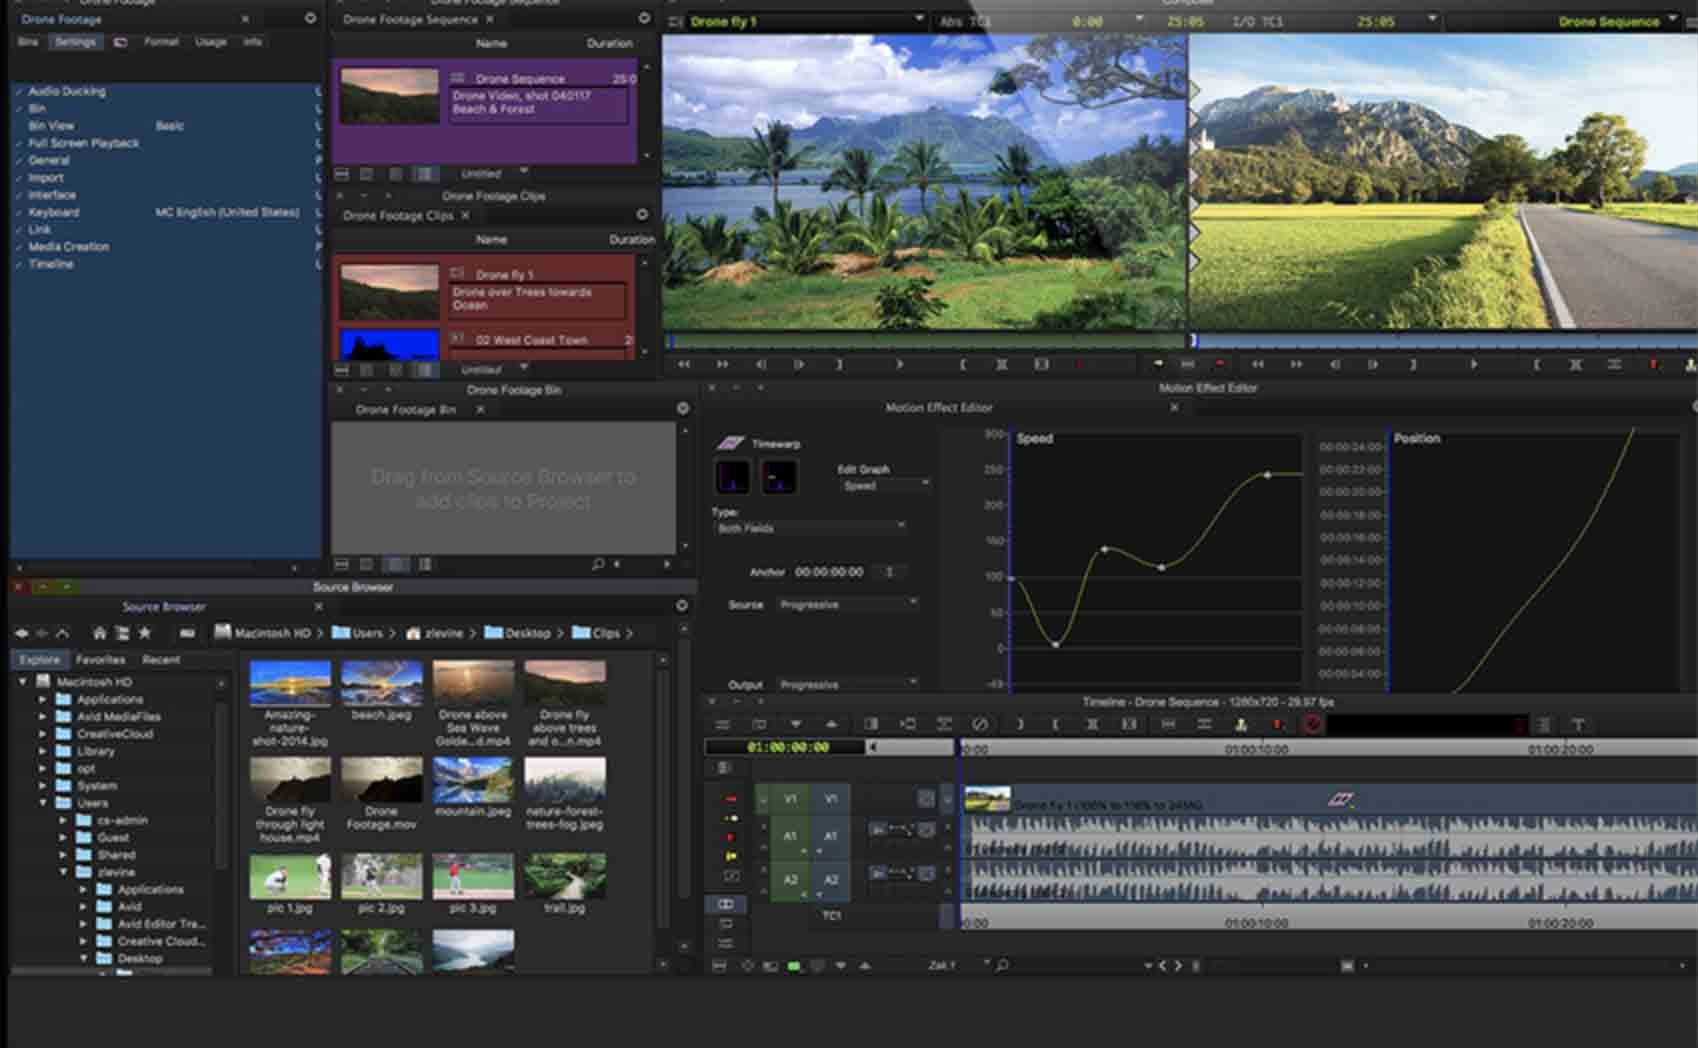 14 Best Video Editing Software & Apps for Any Budget in 2019